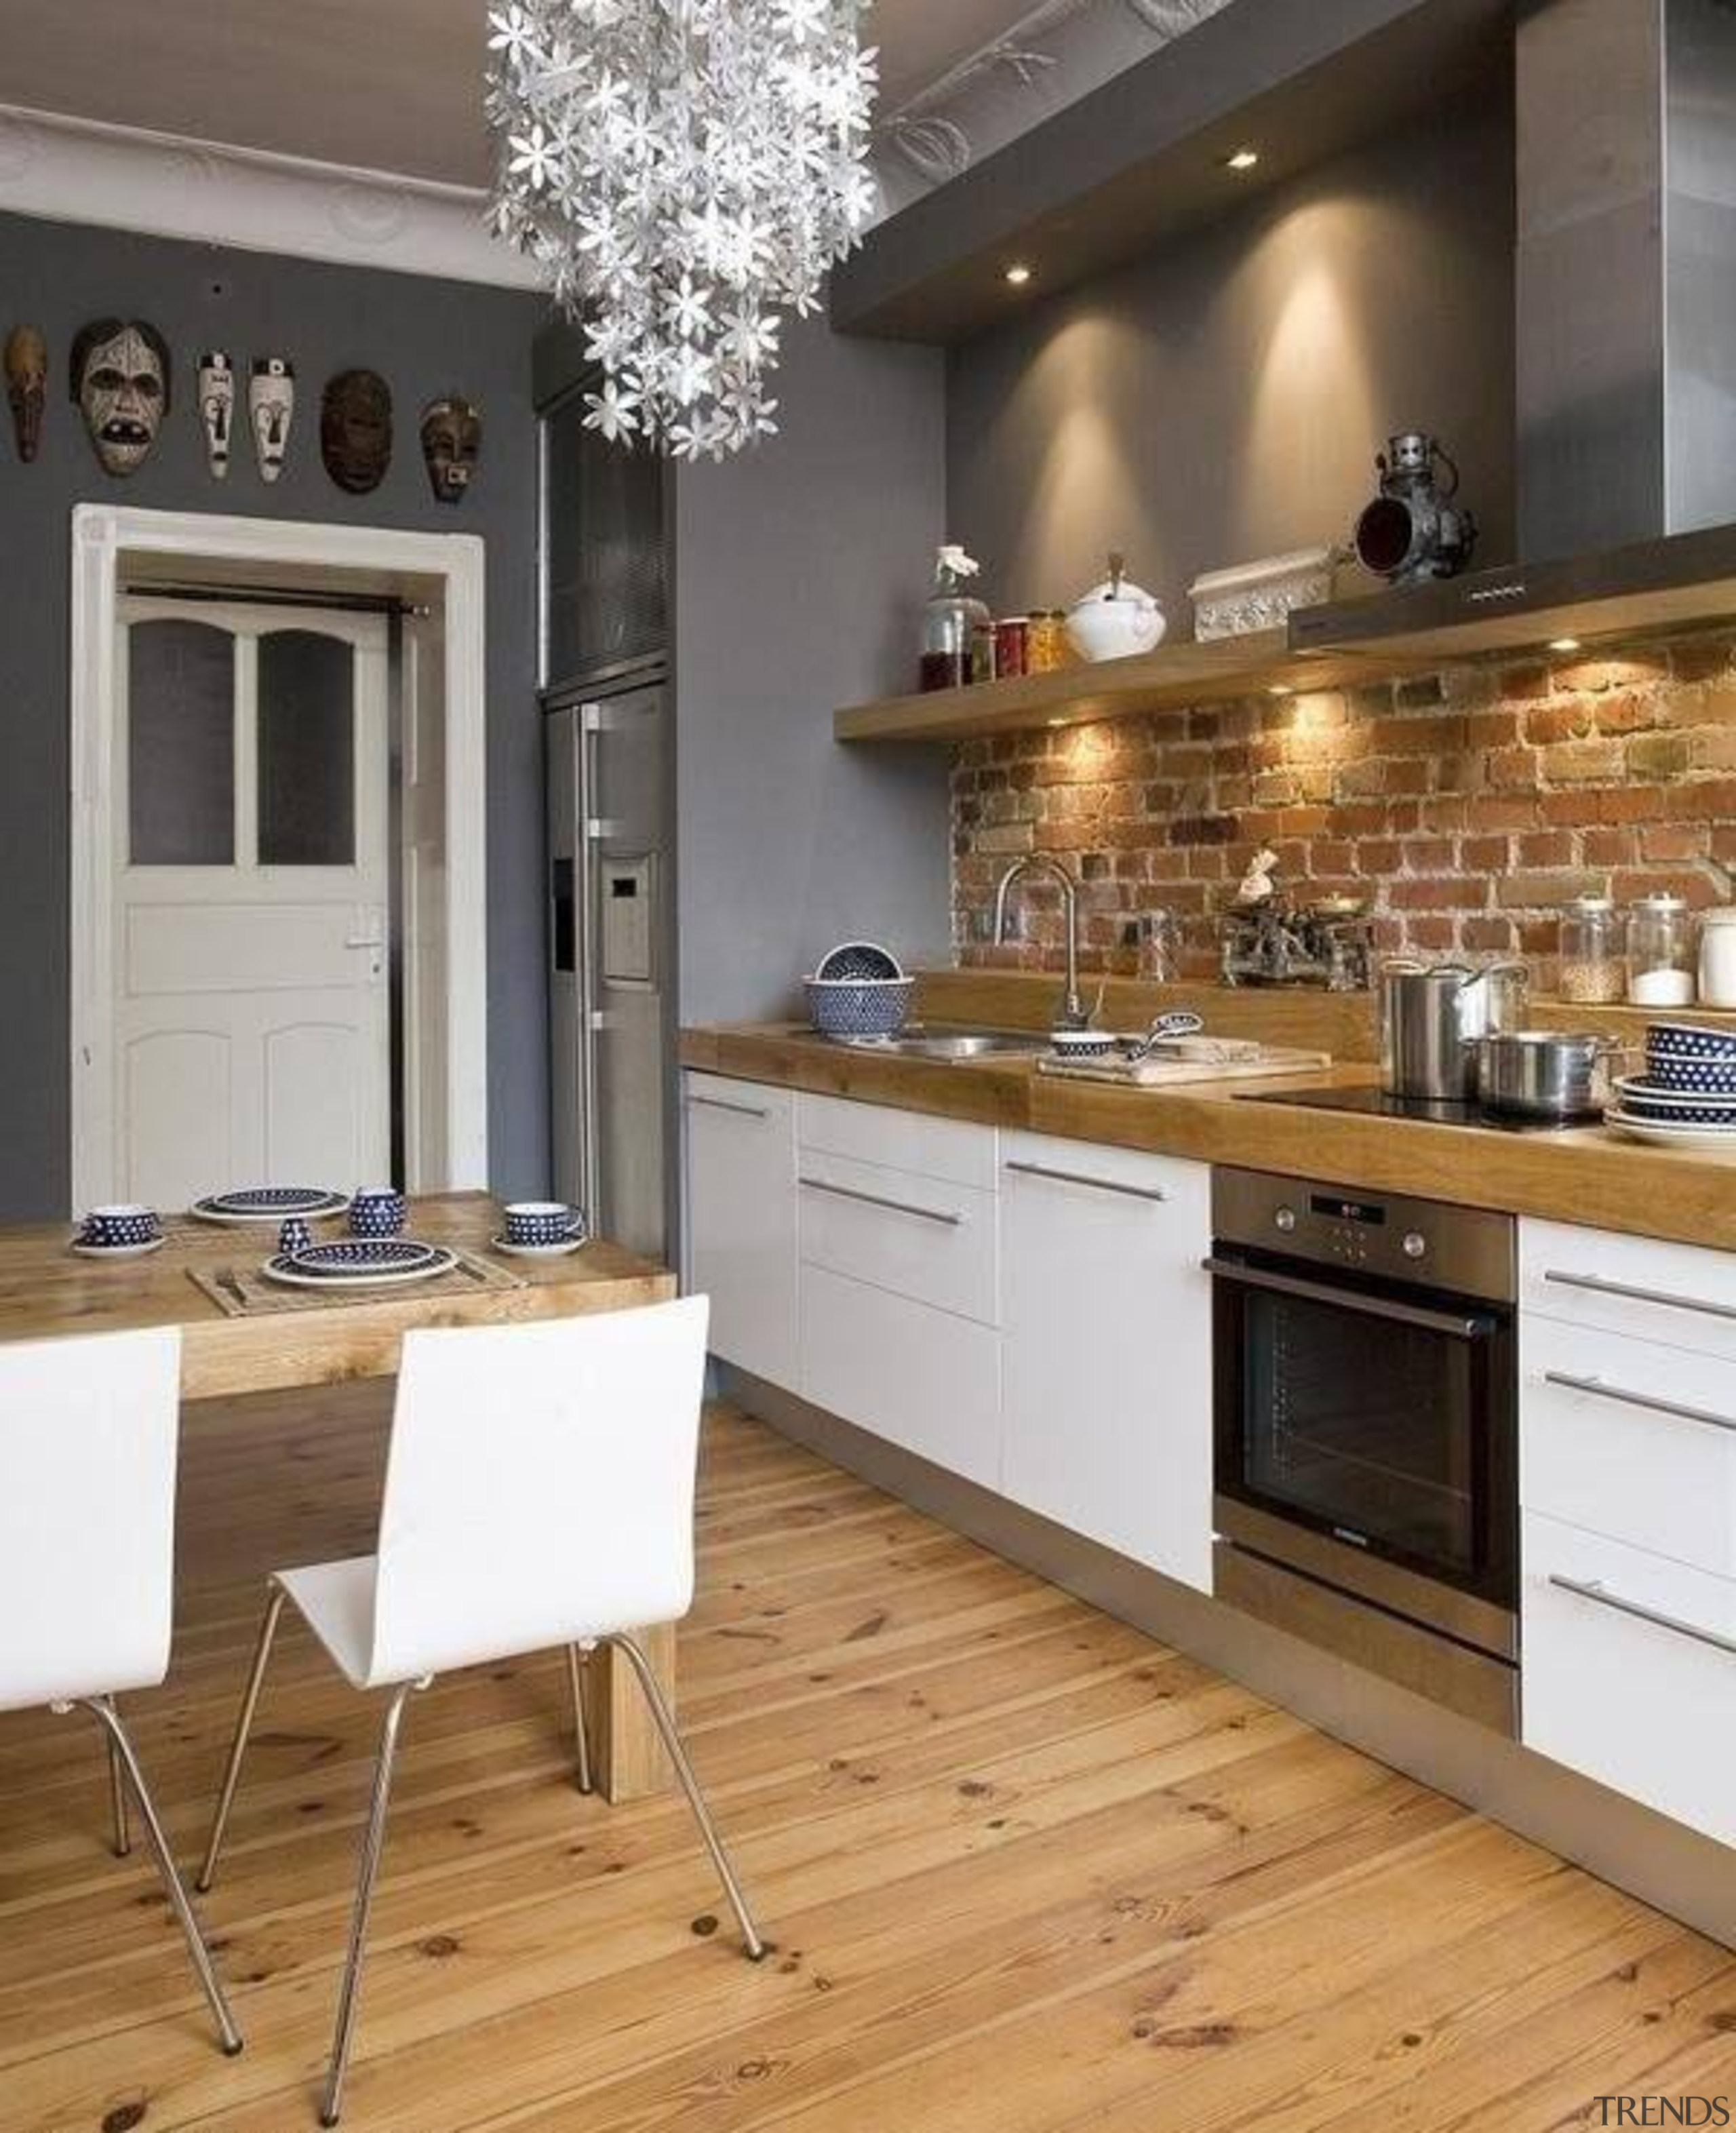 Start a myTrends ProjectCreate an ideas hub for cabinetry, countertop, cuisine classique, floor, flooring, interior design, kitchen, room, gray